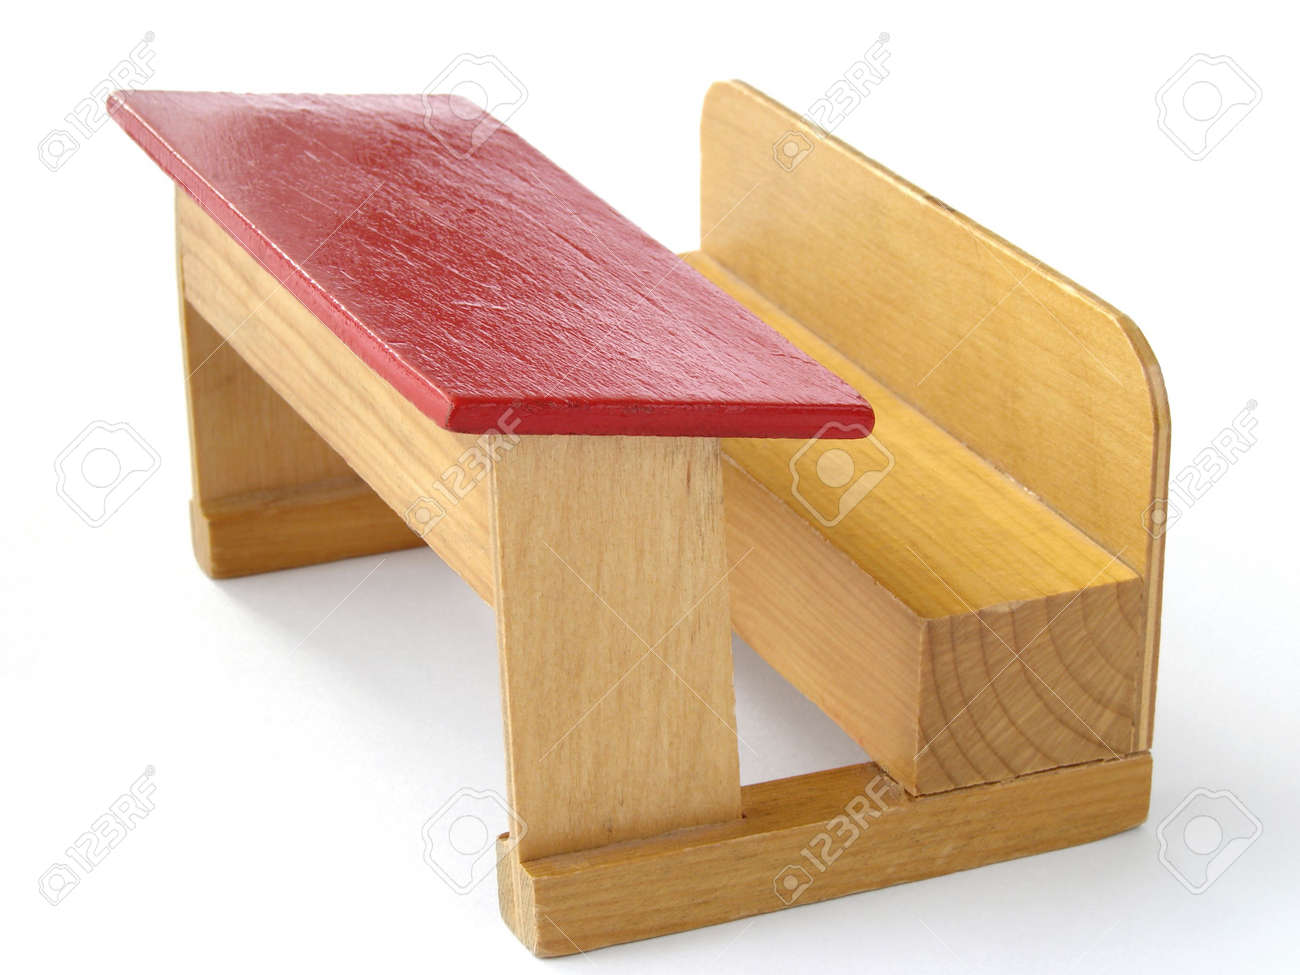 Old Style School Desk Wooden Toy Model Stock Photo, Picture And ...